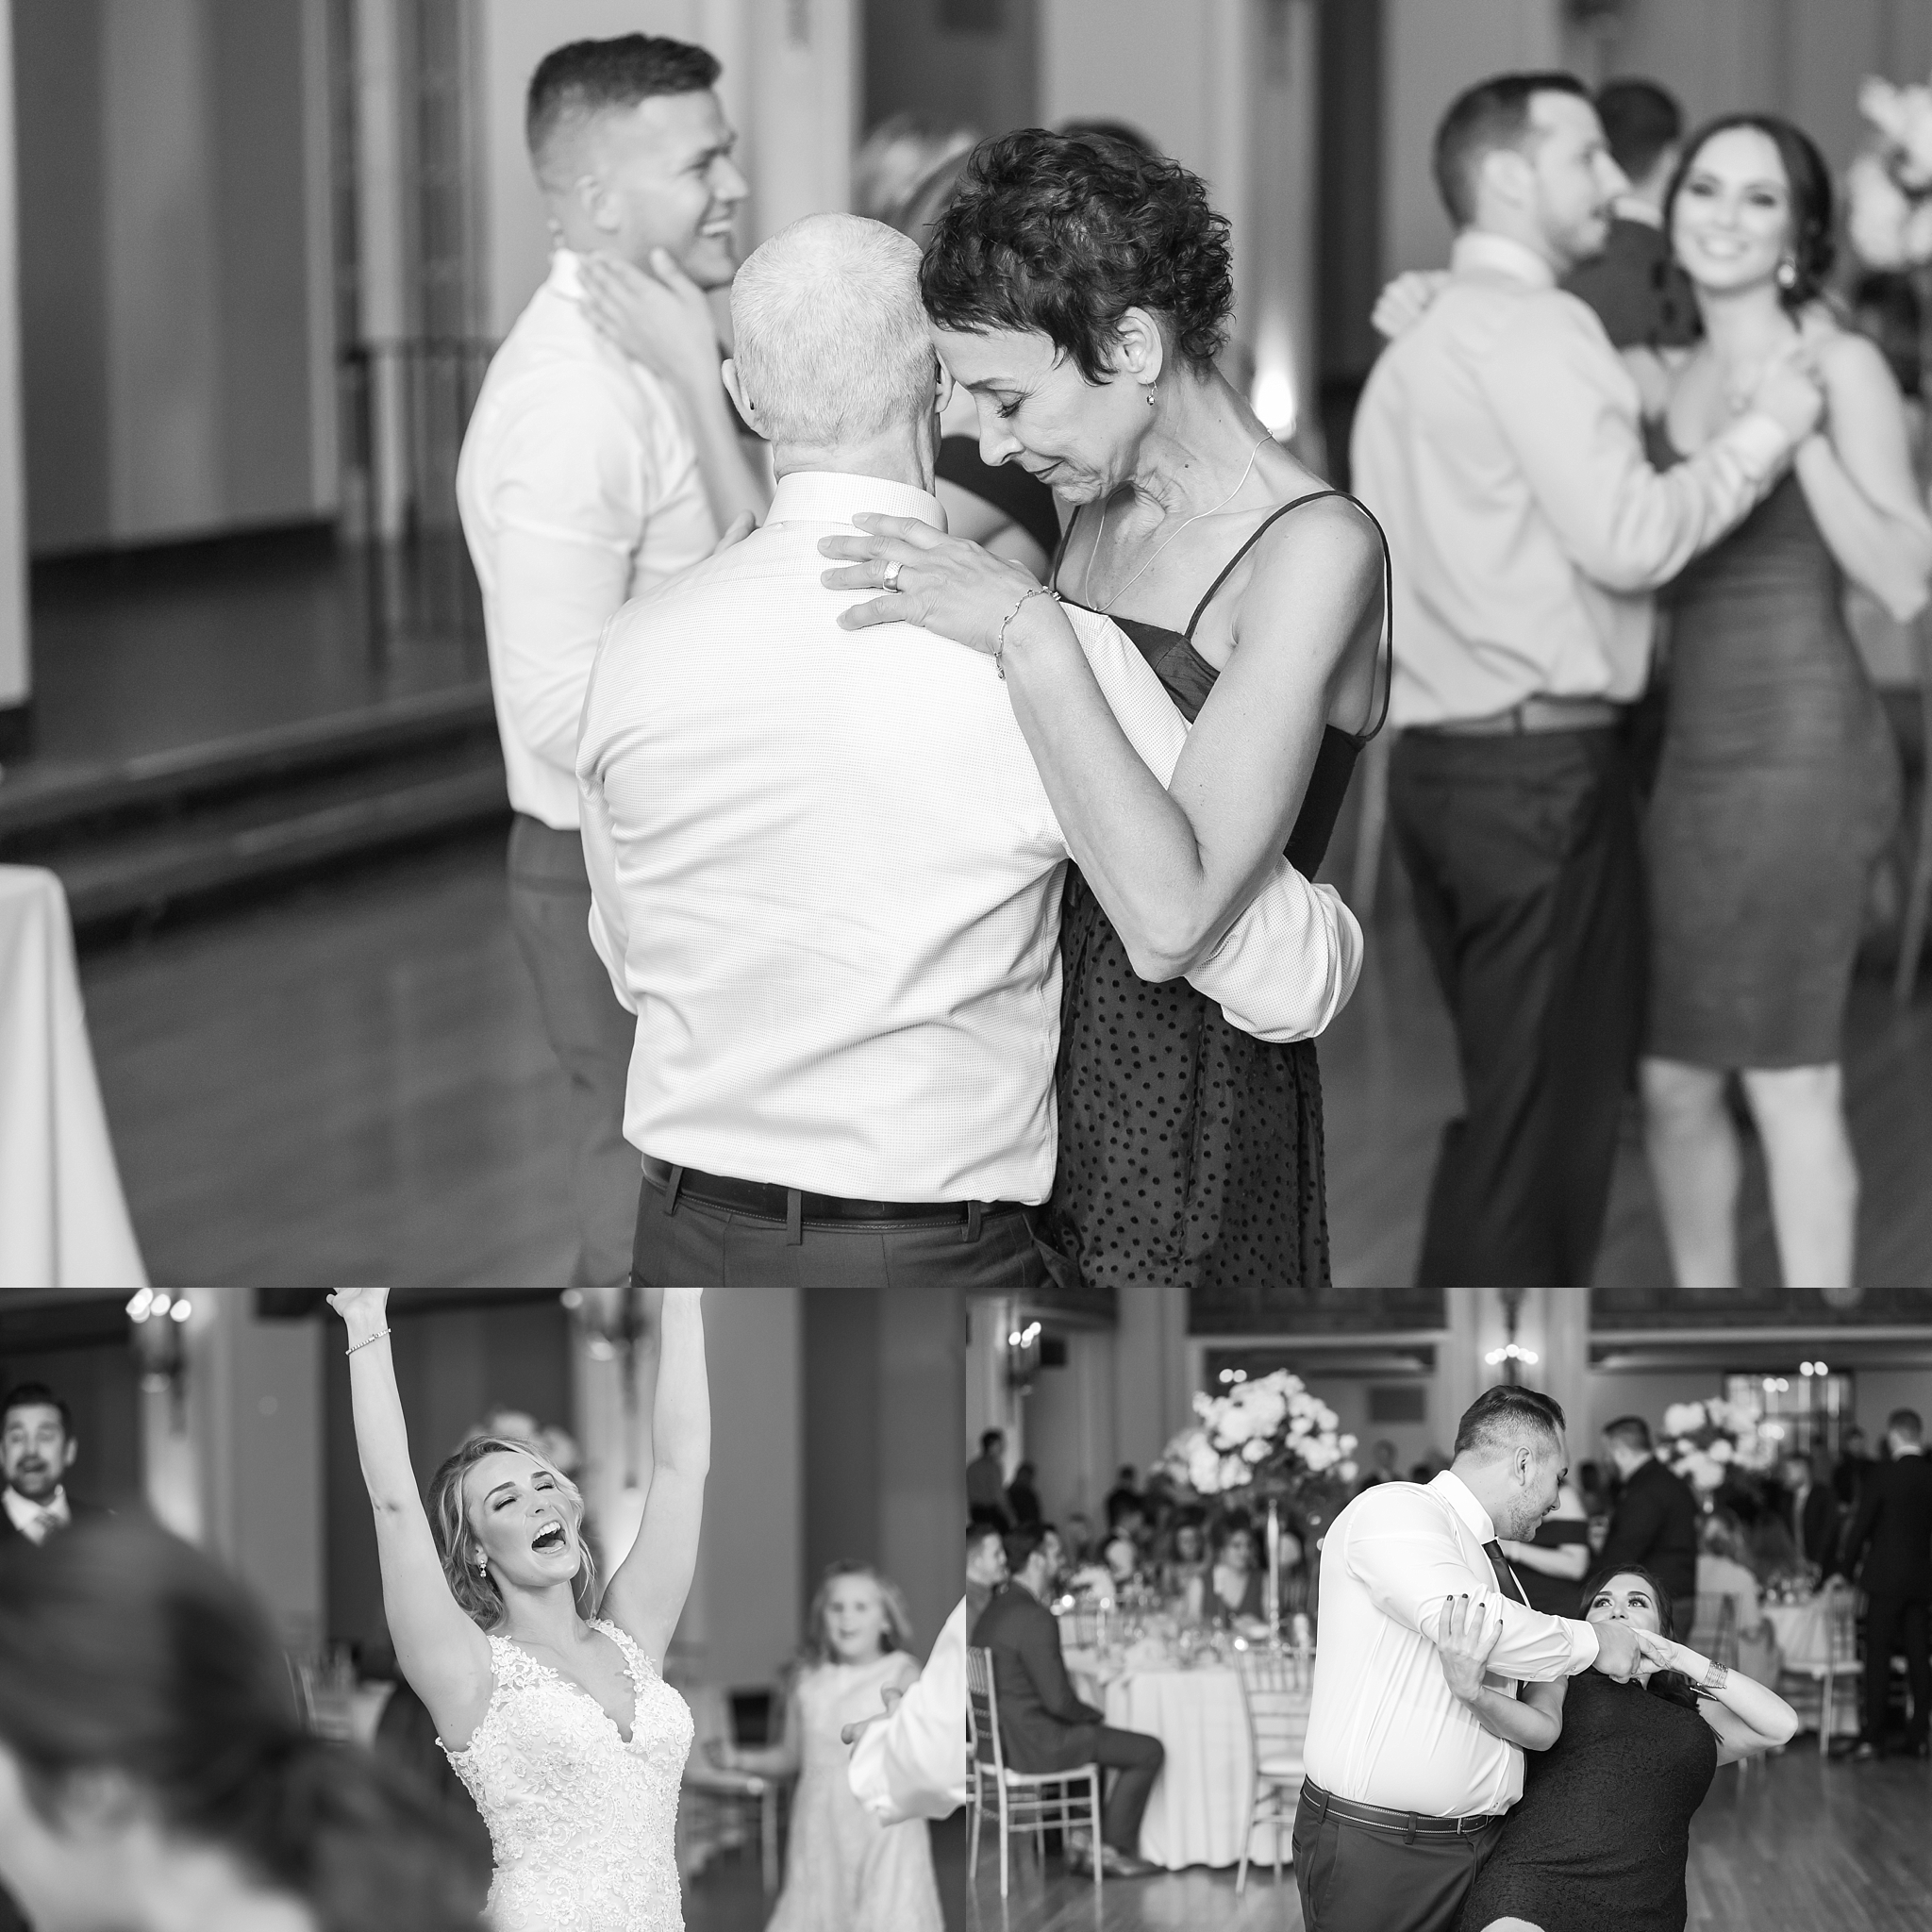 candid-romantic-wedding-photos-at-the-masonic-temple-belle-isle-detroit-institute-of-arts-in-detroit-michigan-by-courtney-carolyn-photography_0115.jpg